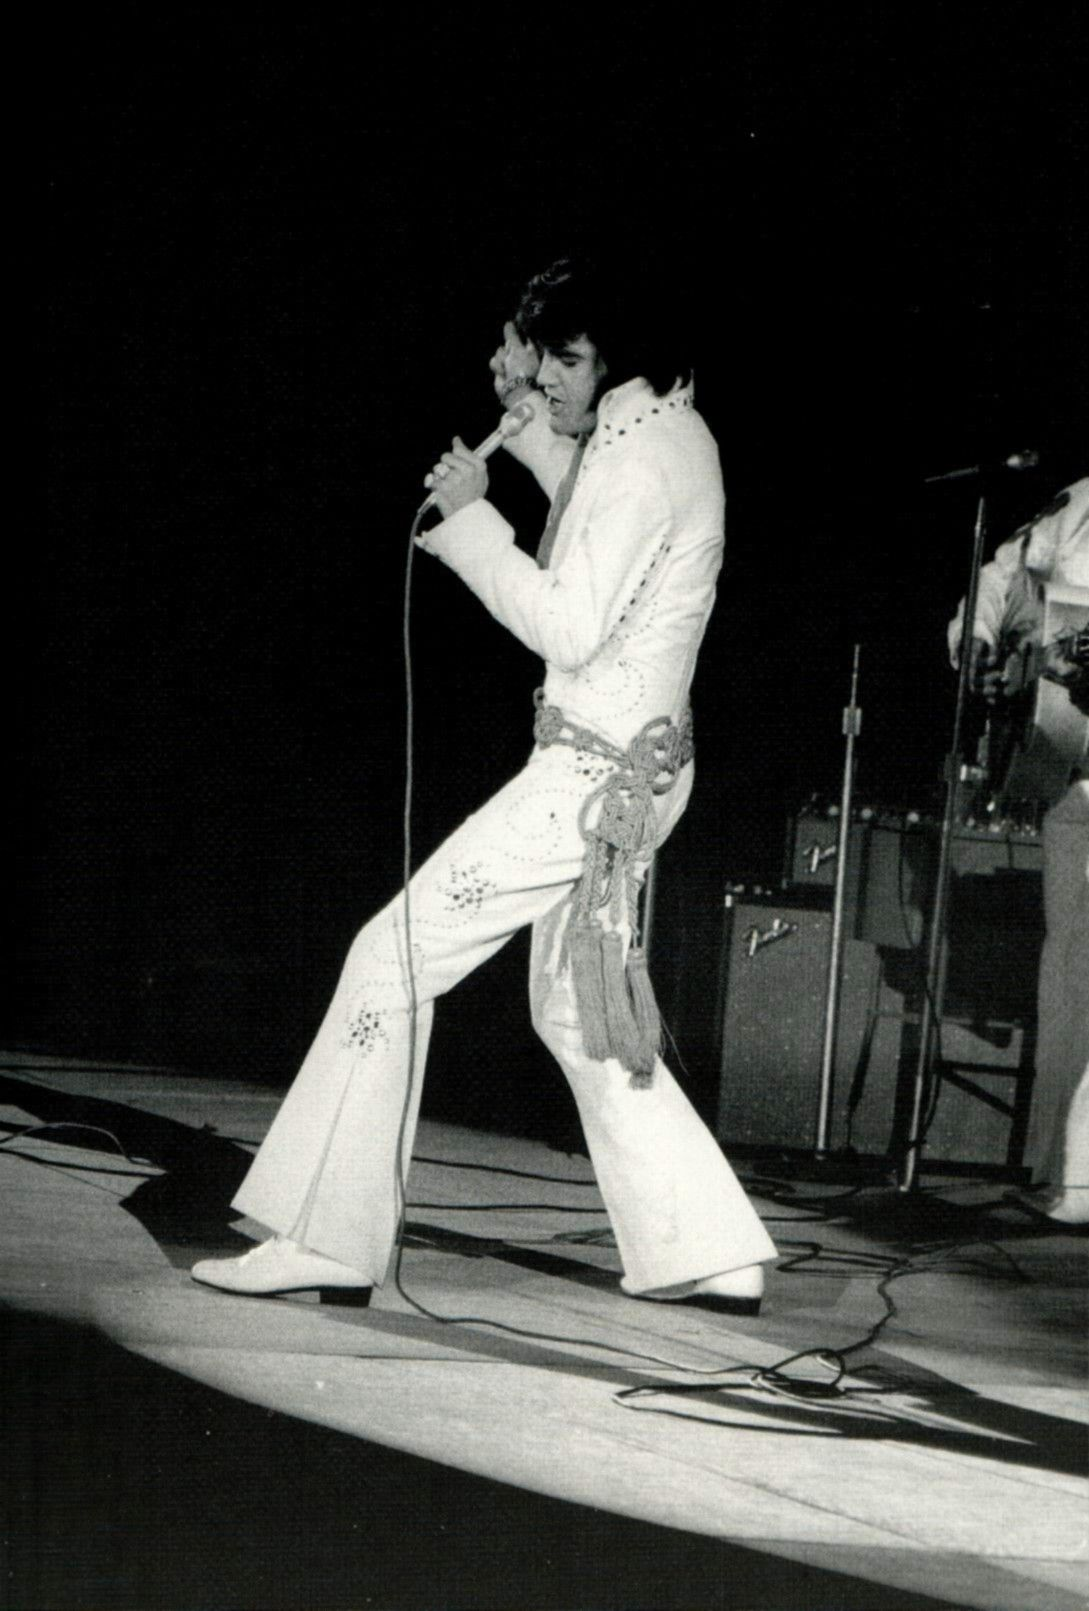 Elvis In Concert In Los Angeles In November 14 1970 Elvis In Concert Elvis Presley Elvis